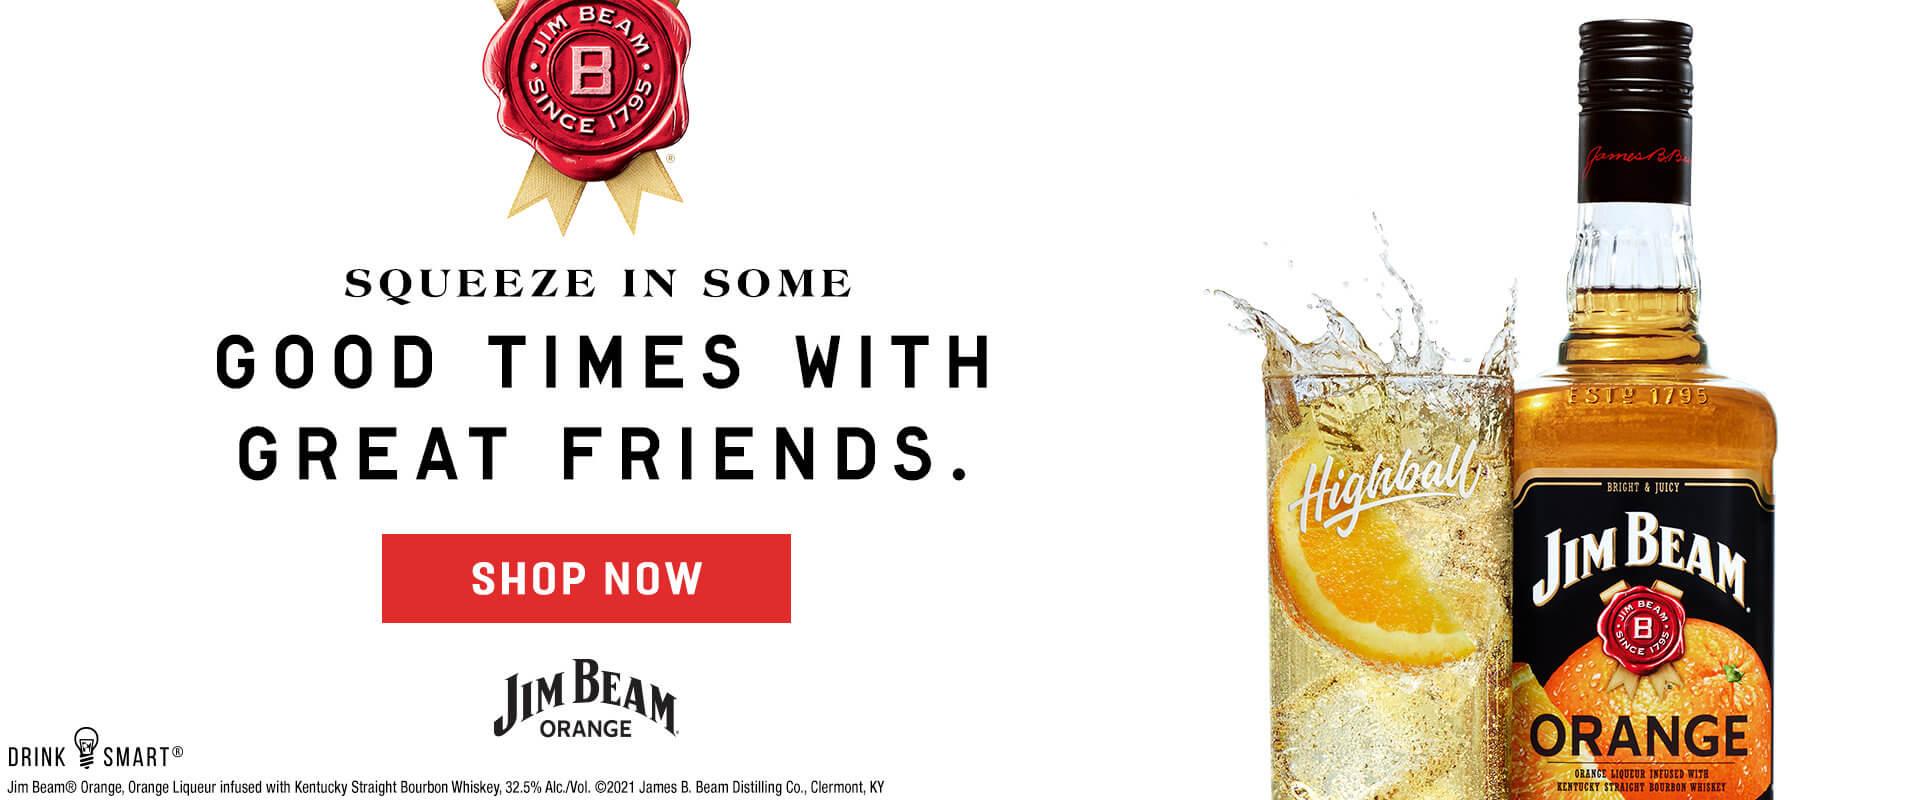 Squeeze in some good times with friends: Jim Bean Orange